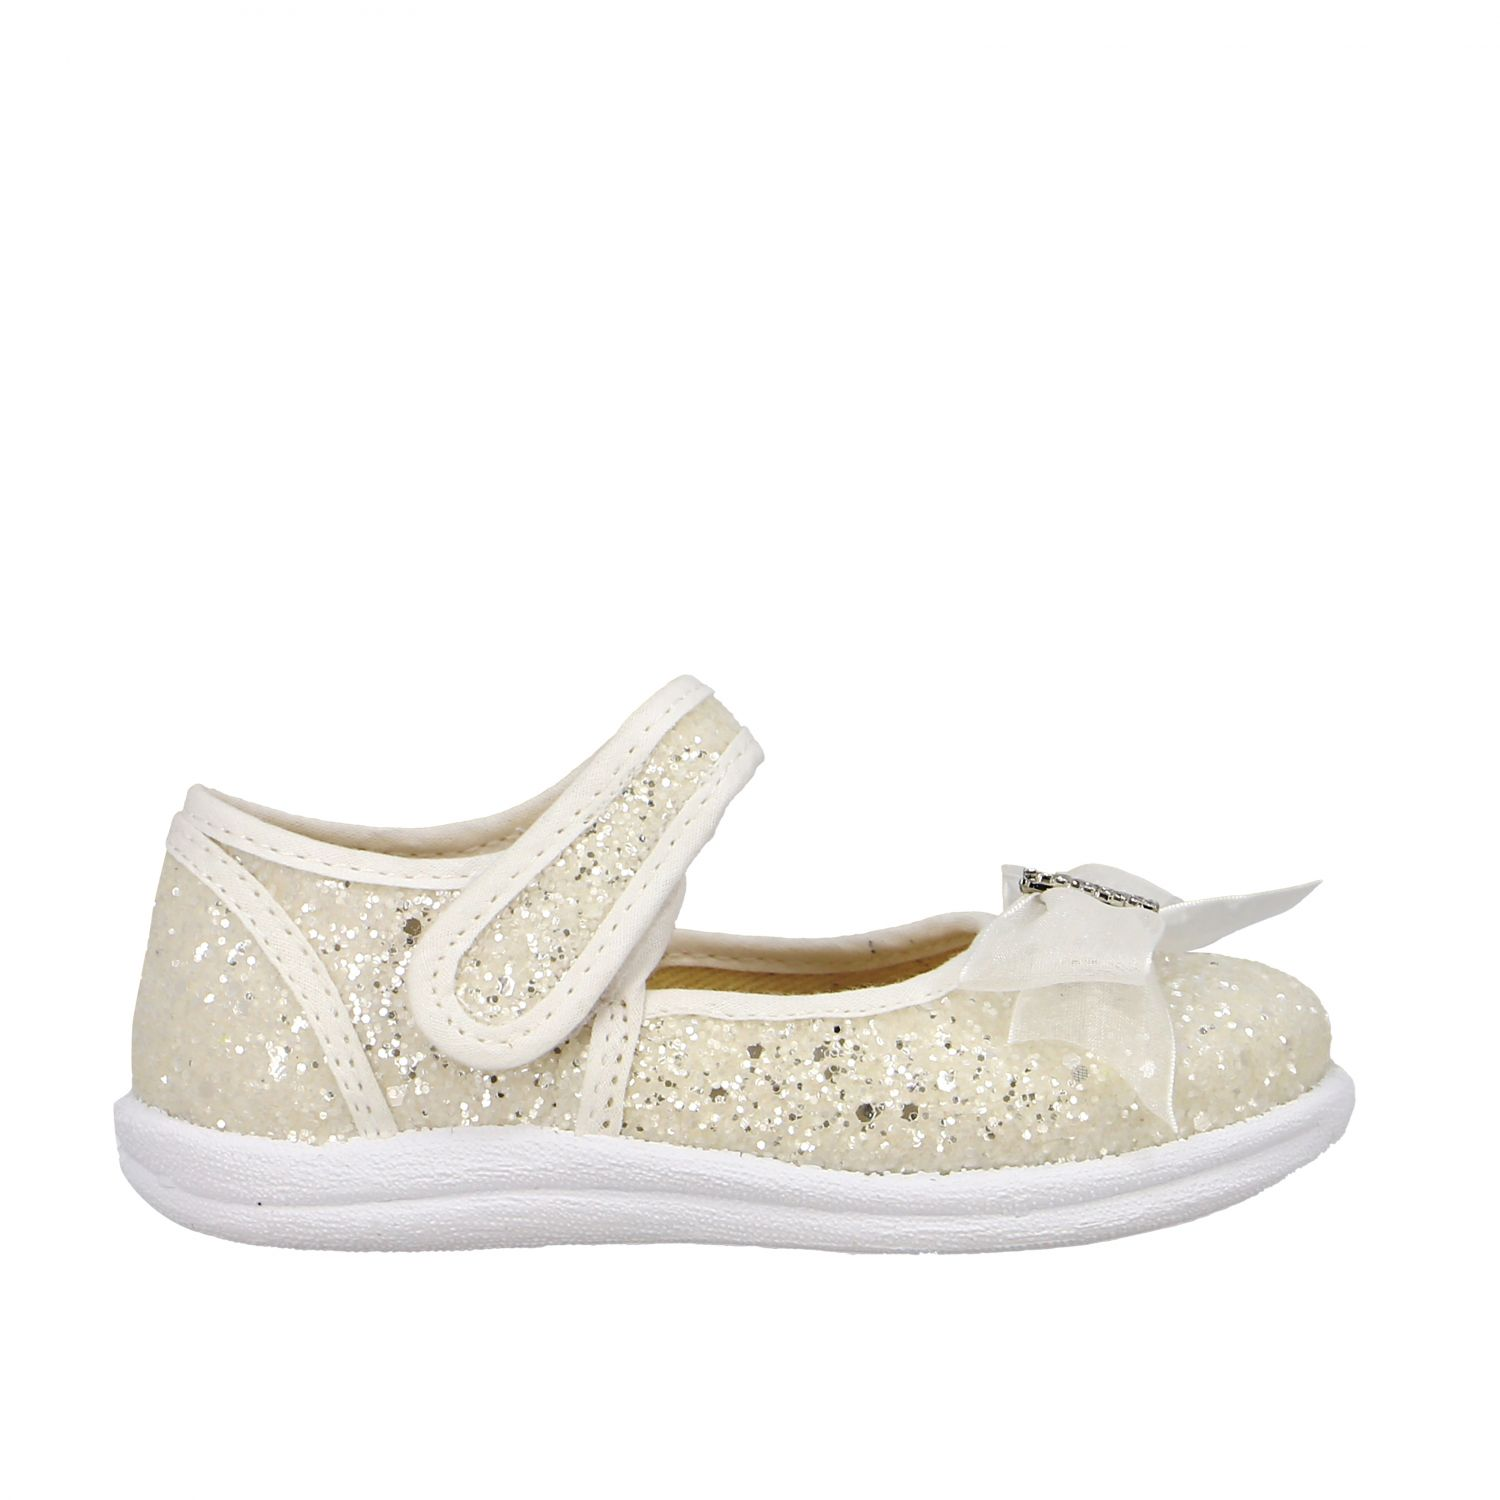 Monnalisa ballet flats in glitter fabric with bow and rhinestones white 1